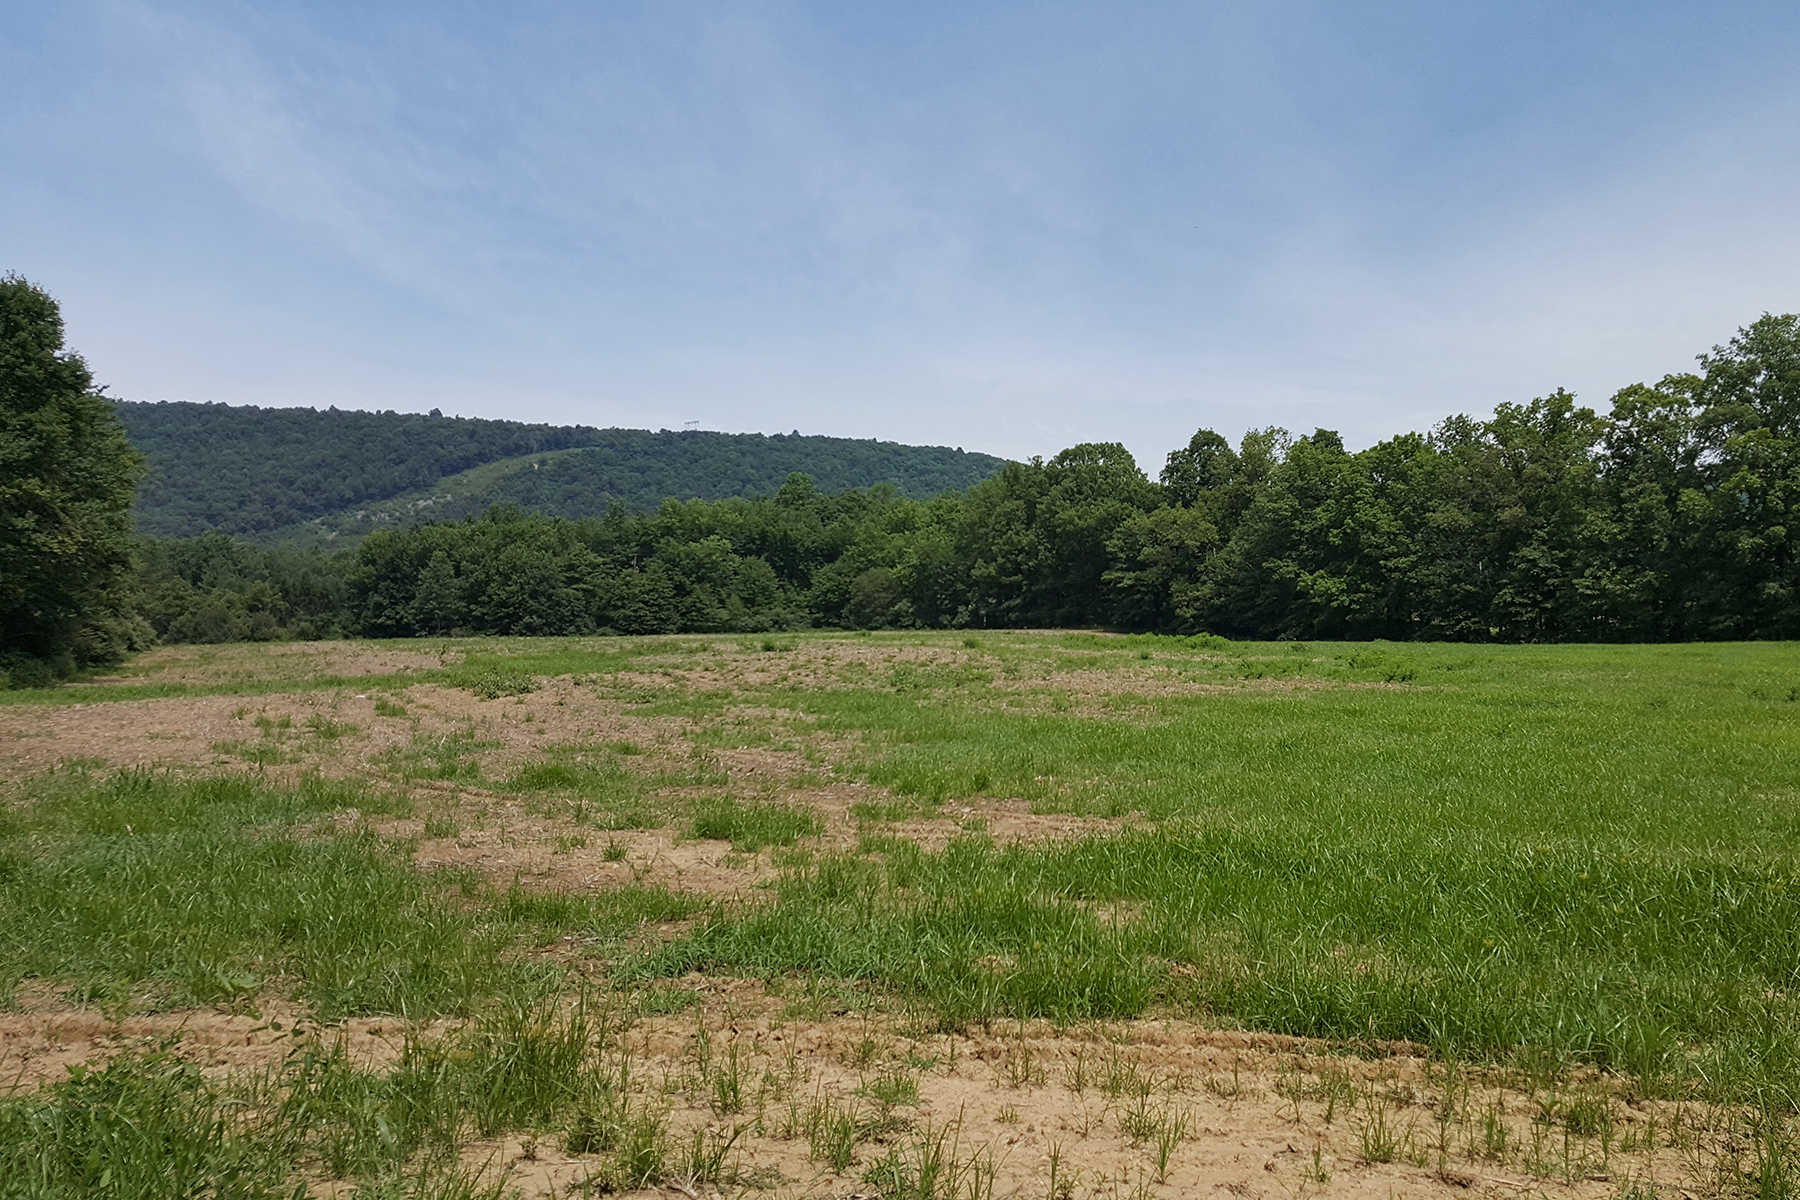 Terreno por un Venta en Wind Gap, PA Lot 6+14 W Mountain Rd Wind Gap, Pennsylvania 18091 Estados Unidos